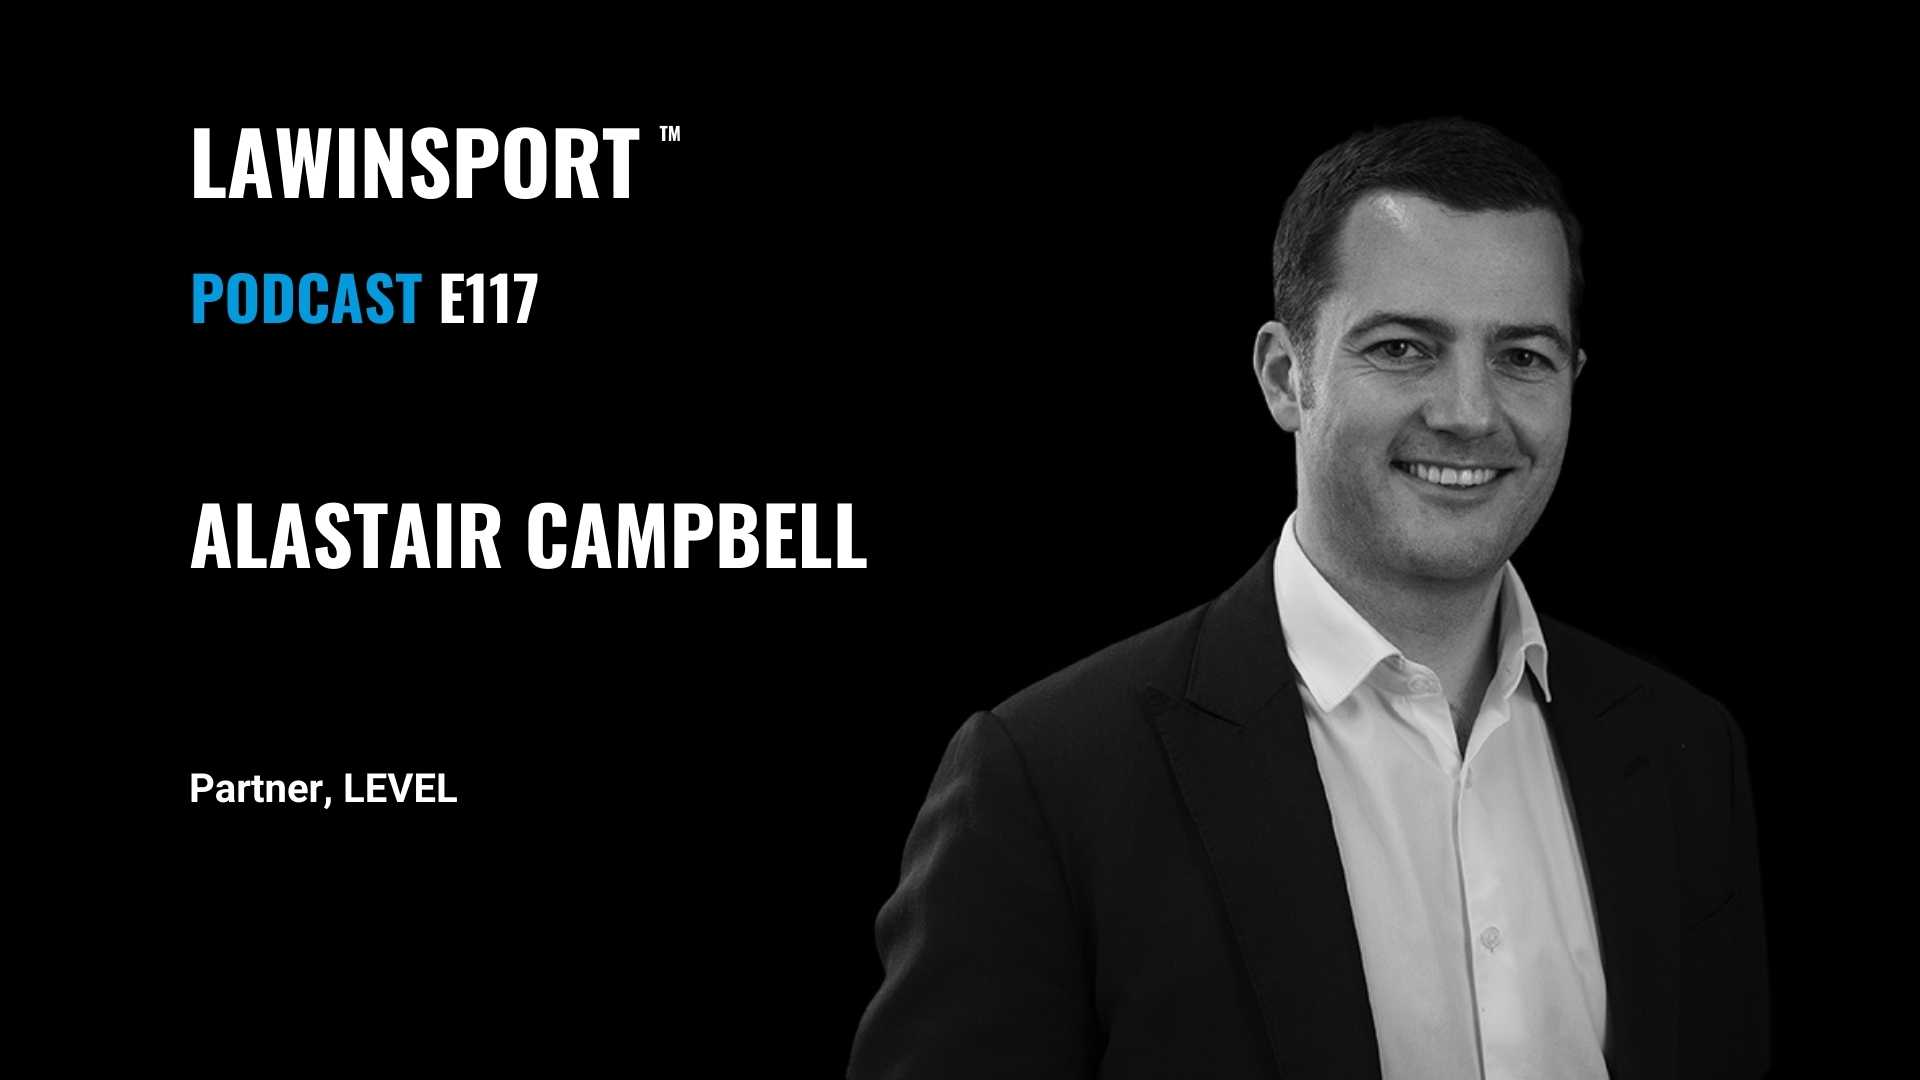 A Data Analysis of Outcomes in FA Betting Cases - Alastair Campbell,  Partner,  LEVEL  - E117